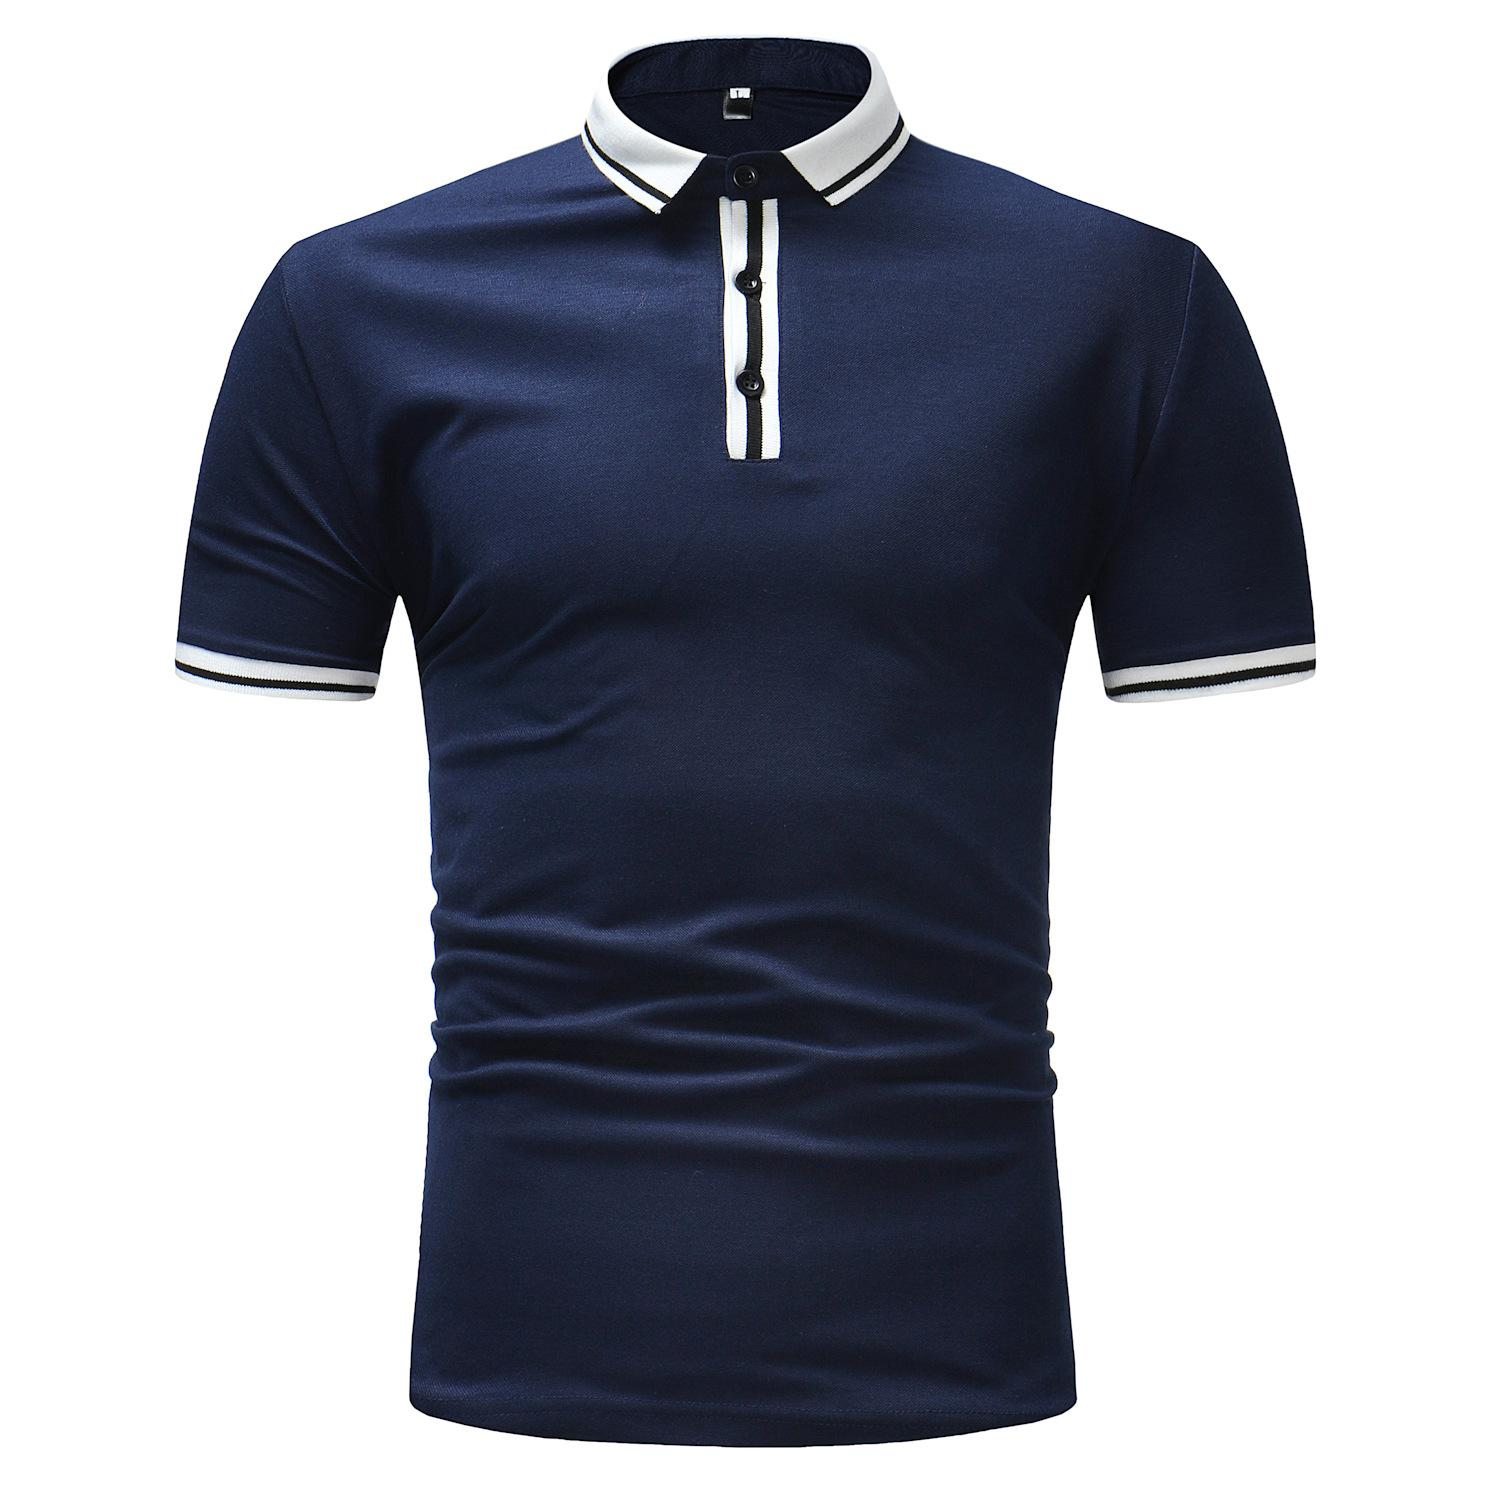 Short-sleeved T-shirts of men's wear explosive large-size plain-color leisure series